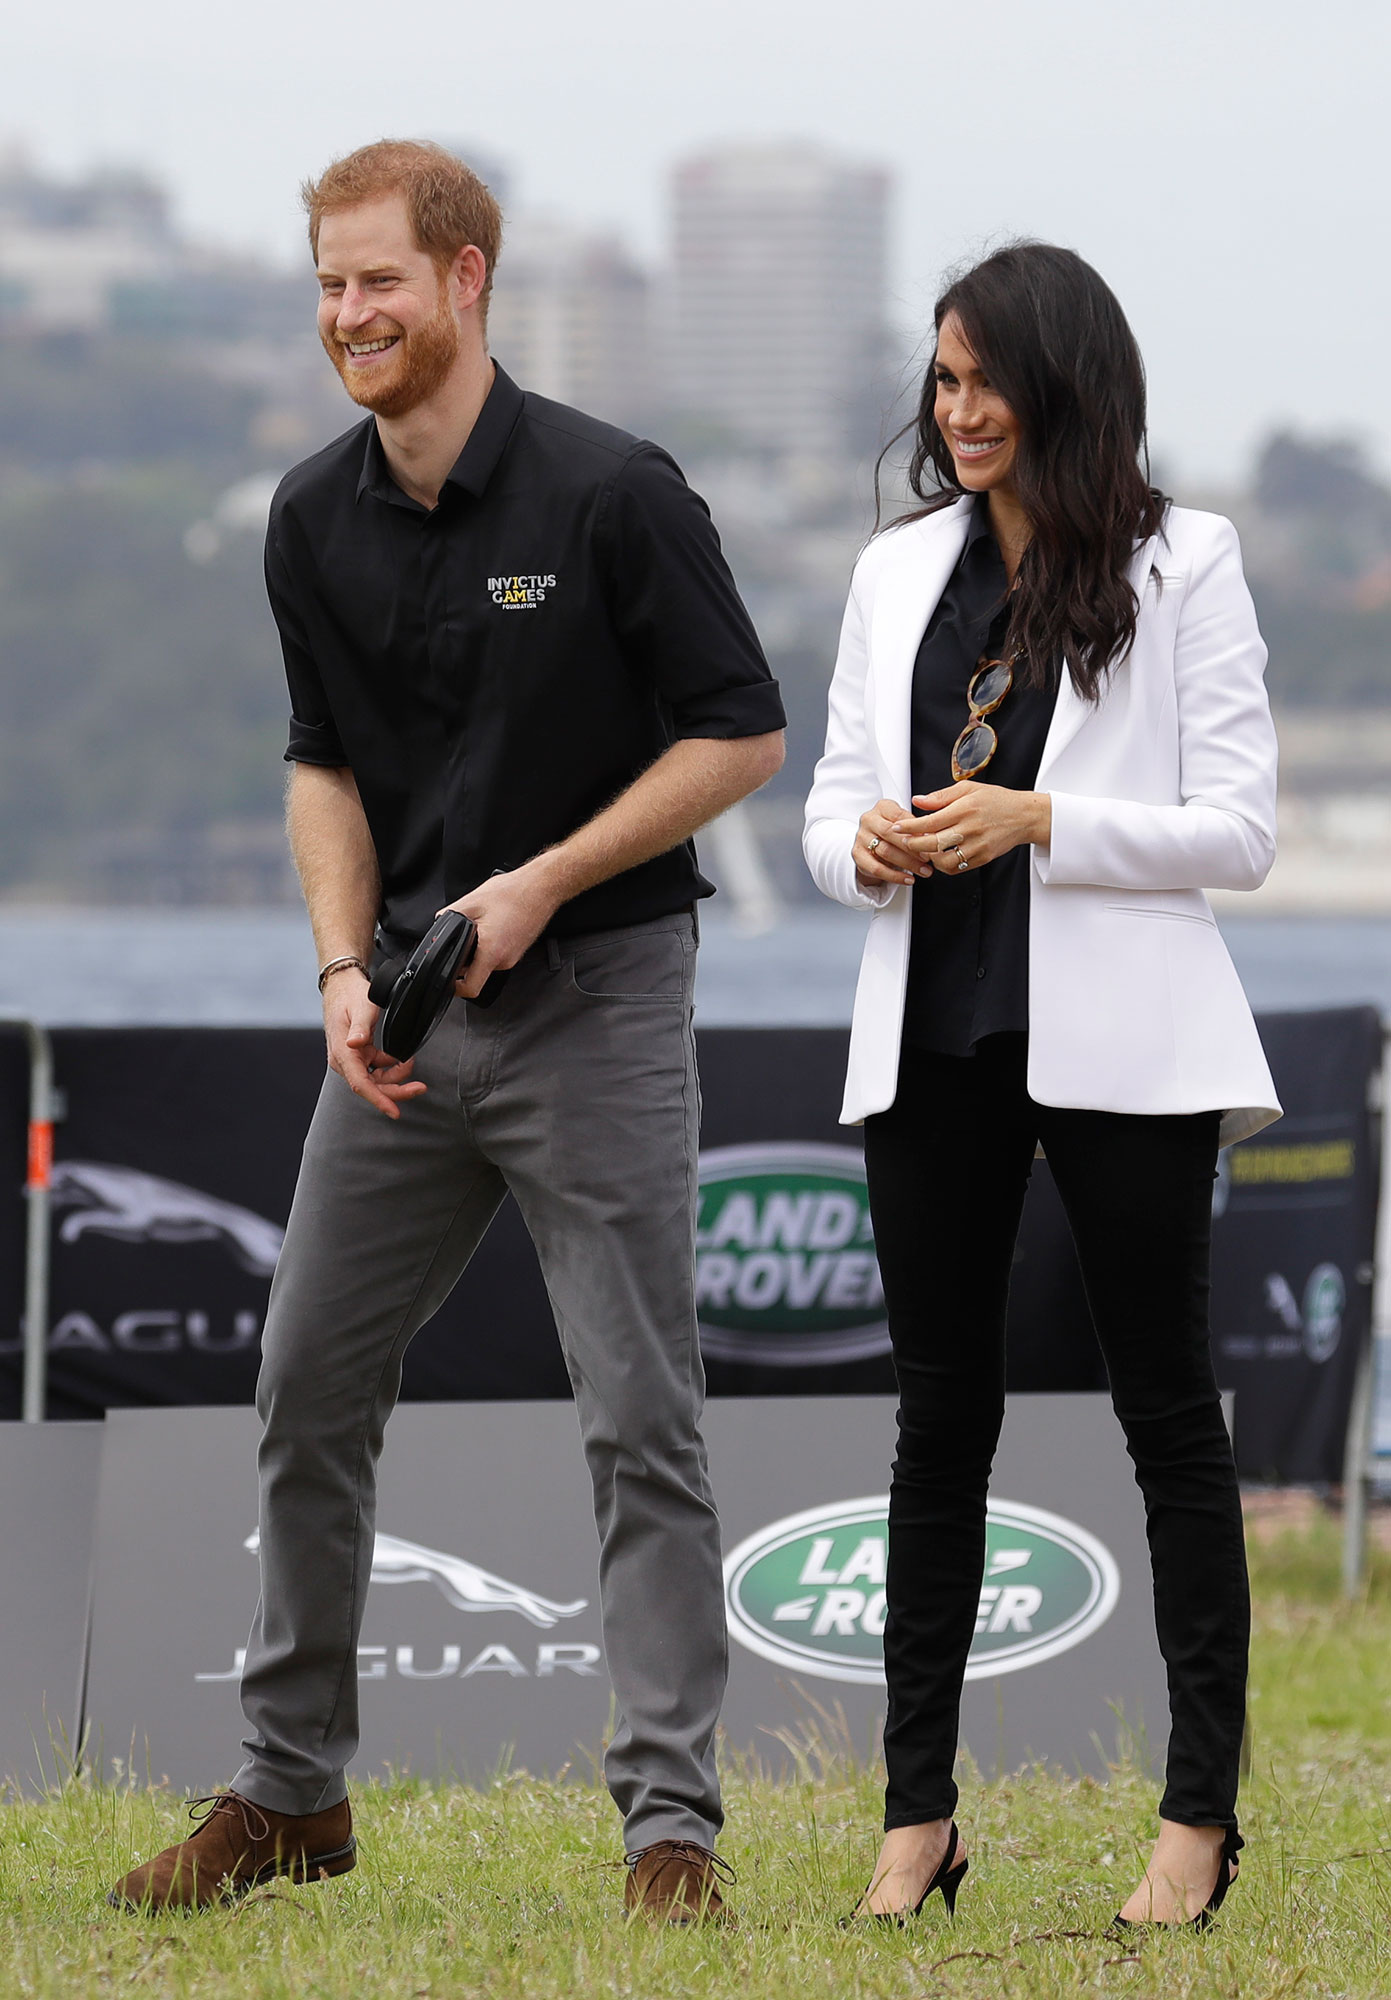 "<div class=""meta image-caption""><div class=""origin-logo origin-image none""><span>none</span></div><span class=""caption-text"">Prince Harry operates a remote control car with Meghan, Duchess of Sussex at the Invictus Games driving challenge on Cockatoo Island in Sydney, Australia, Saturday, Oct. 20. (Kirsty Wigglesworth/AP Photo)</span></div>"